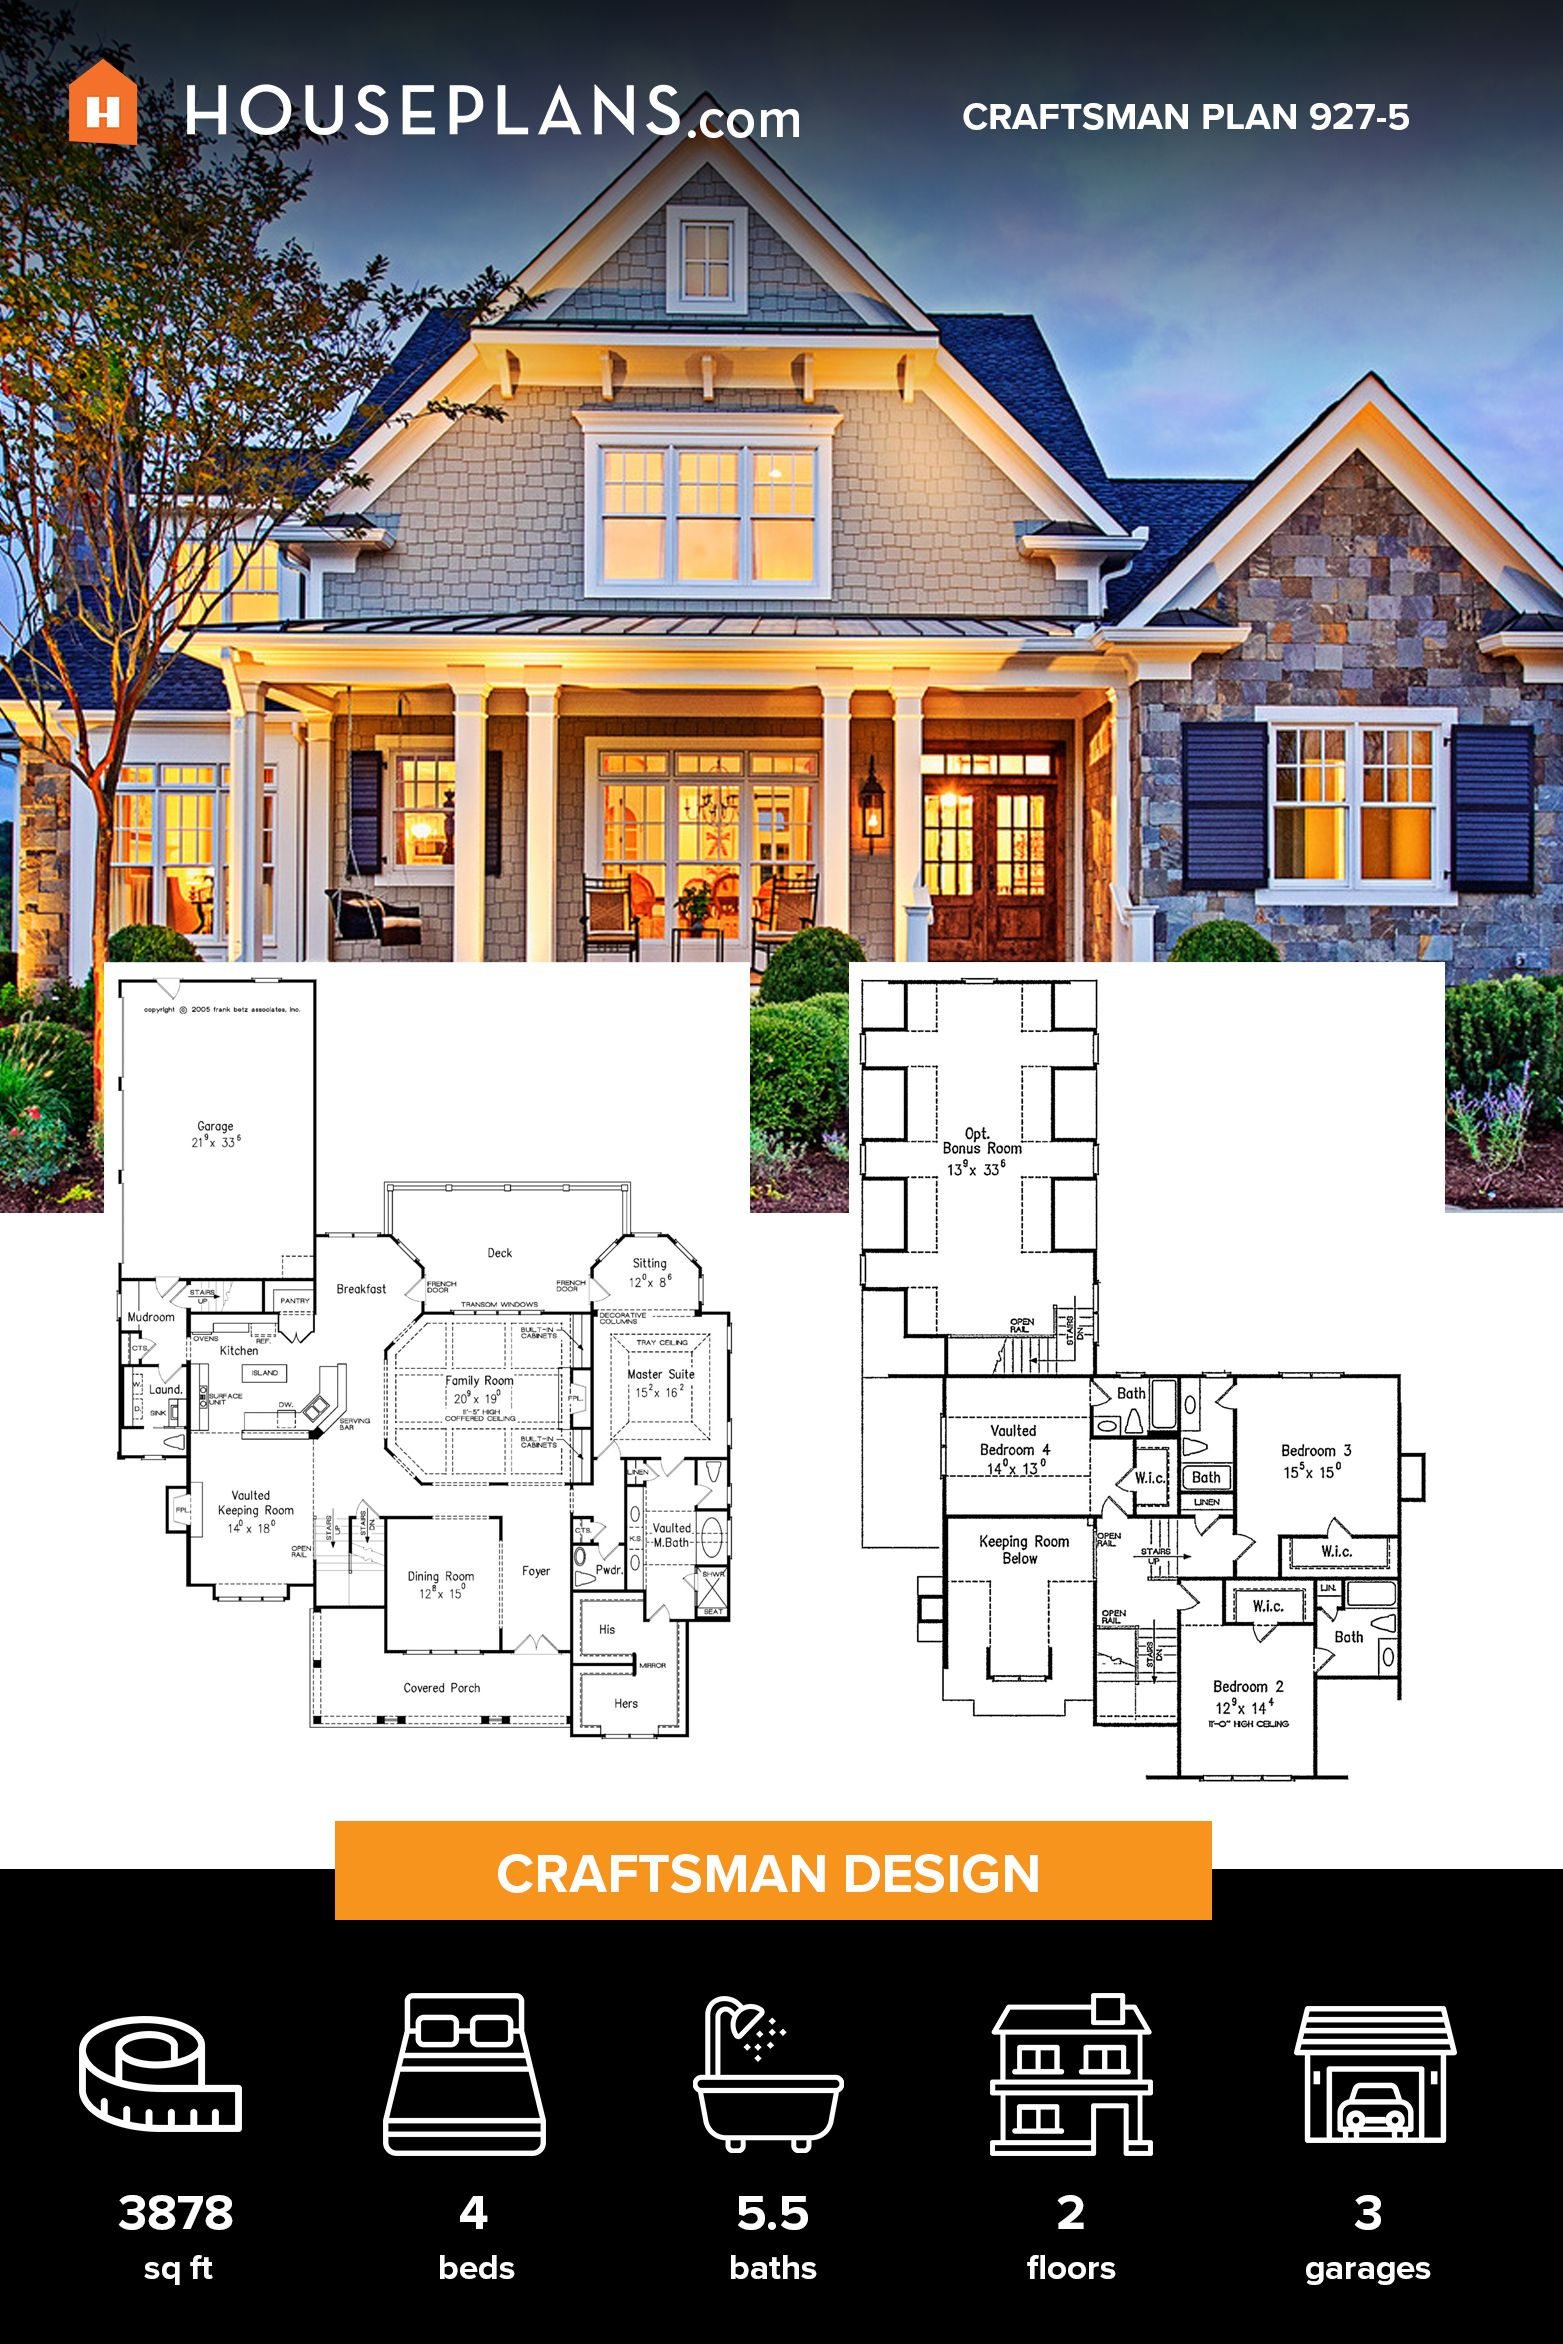 Craftsman Style House Plan 4 Beds 5 5 Baths 3878 Sq Ft Plan 927 5 Craftsman Style House Plans Craftsman House Plans Architectural Design House Plans